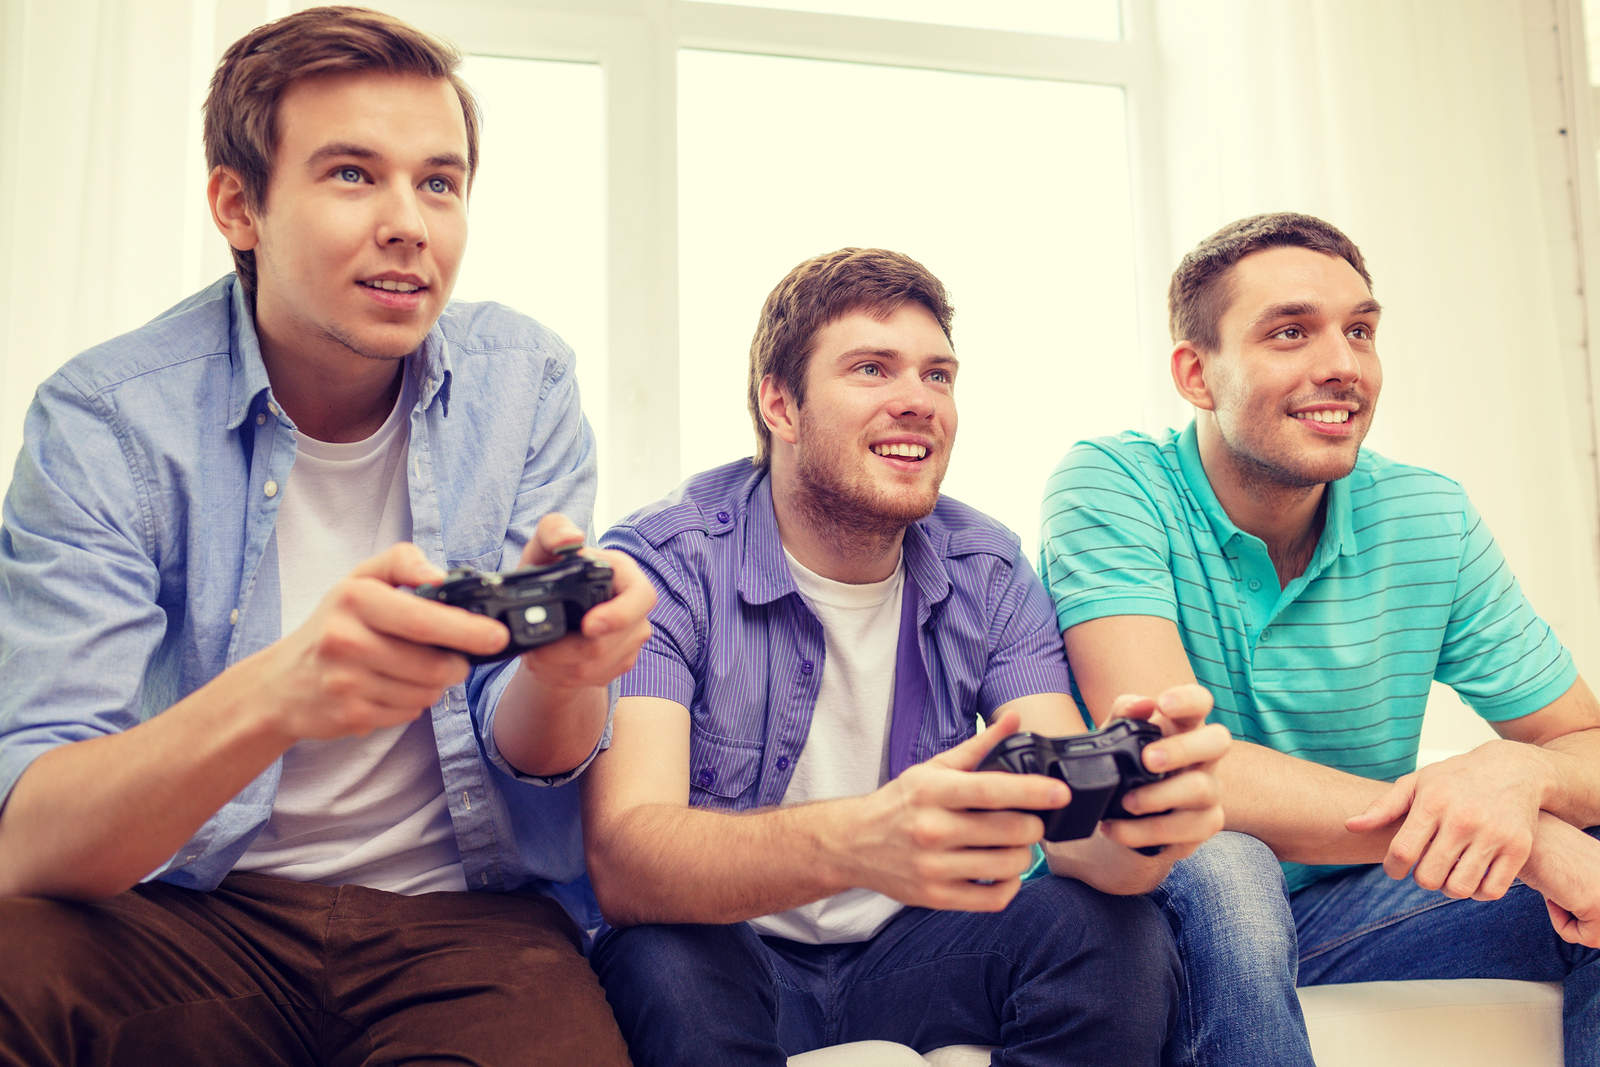 Fun Games to Play Online - Fun Games for Every Occasion